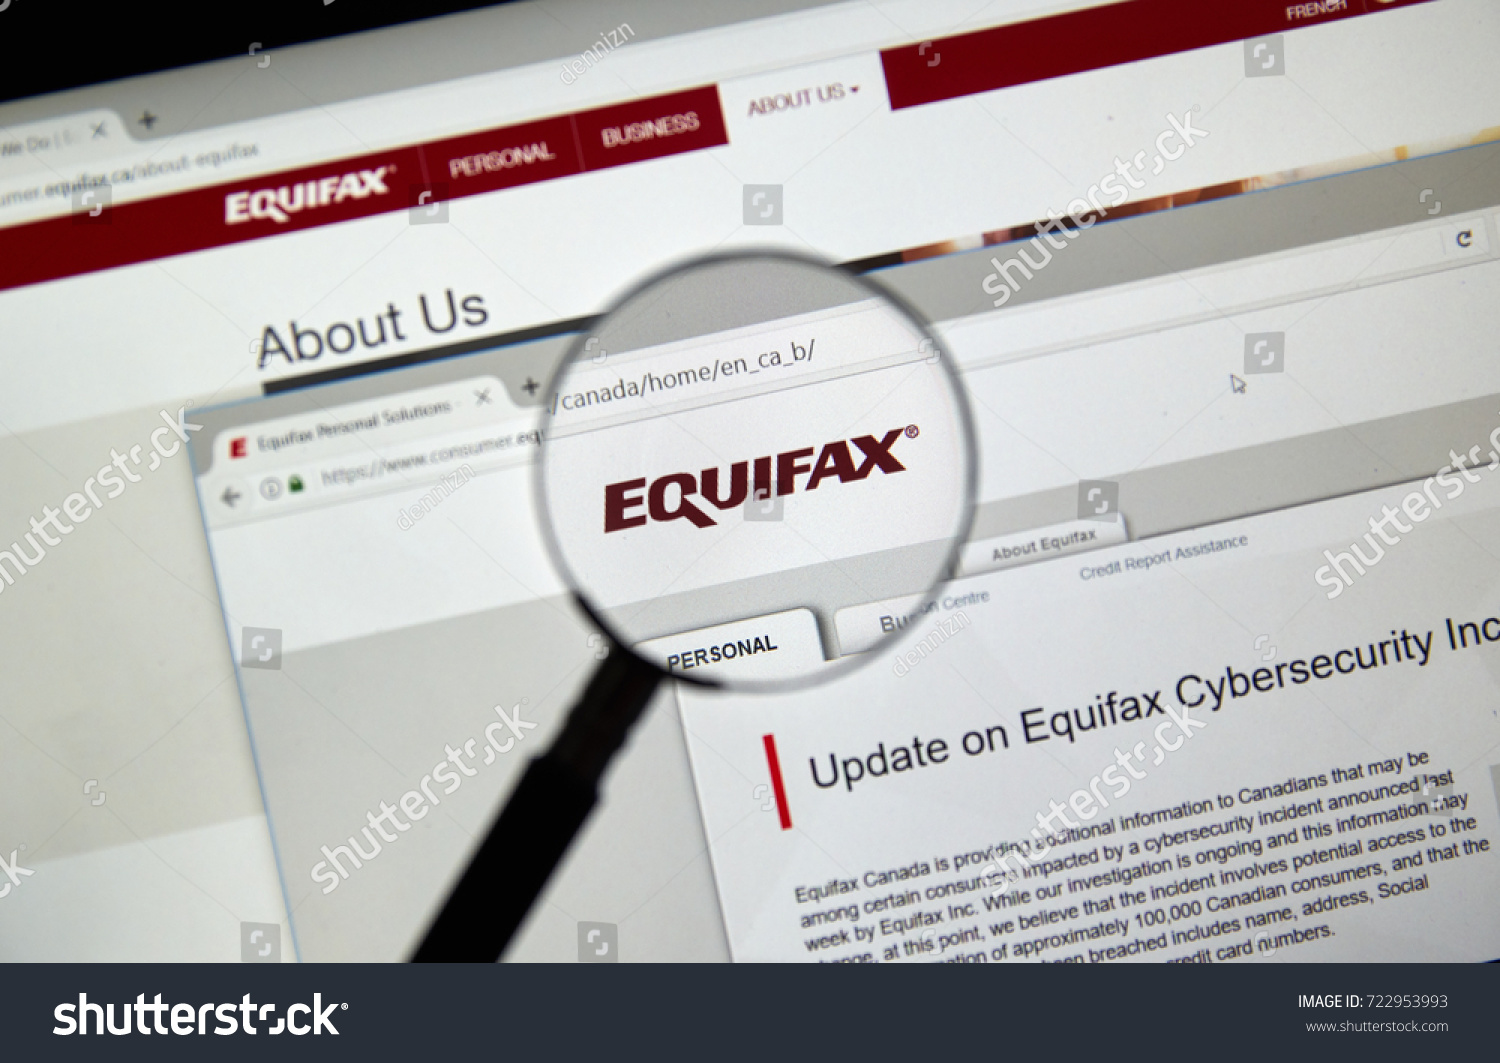 The Impact of Moody's Ruling on the Equifax Data Breach